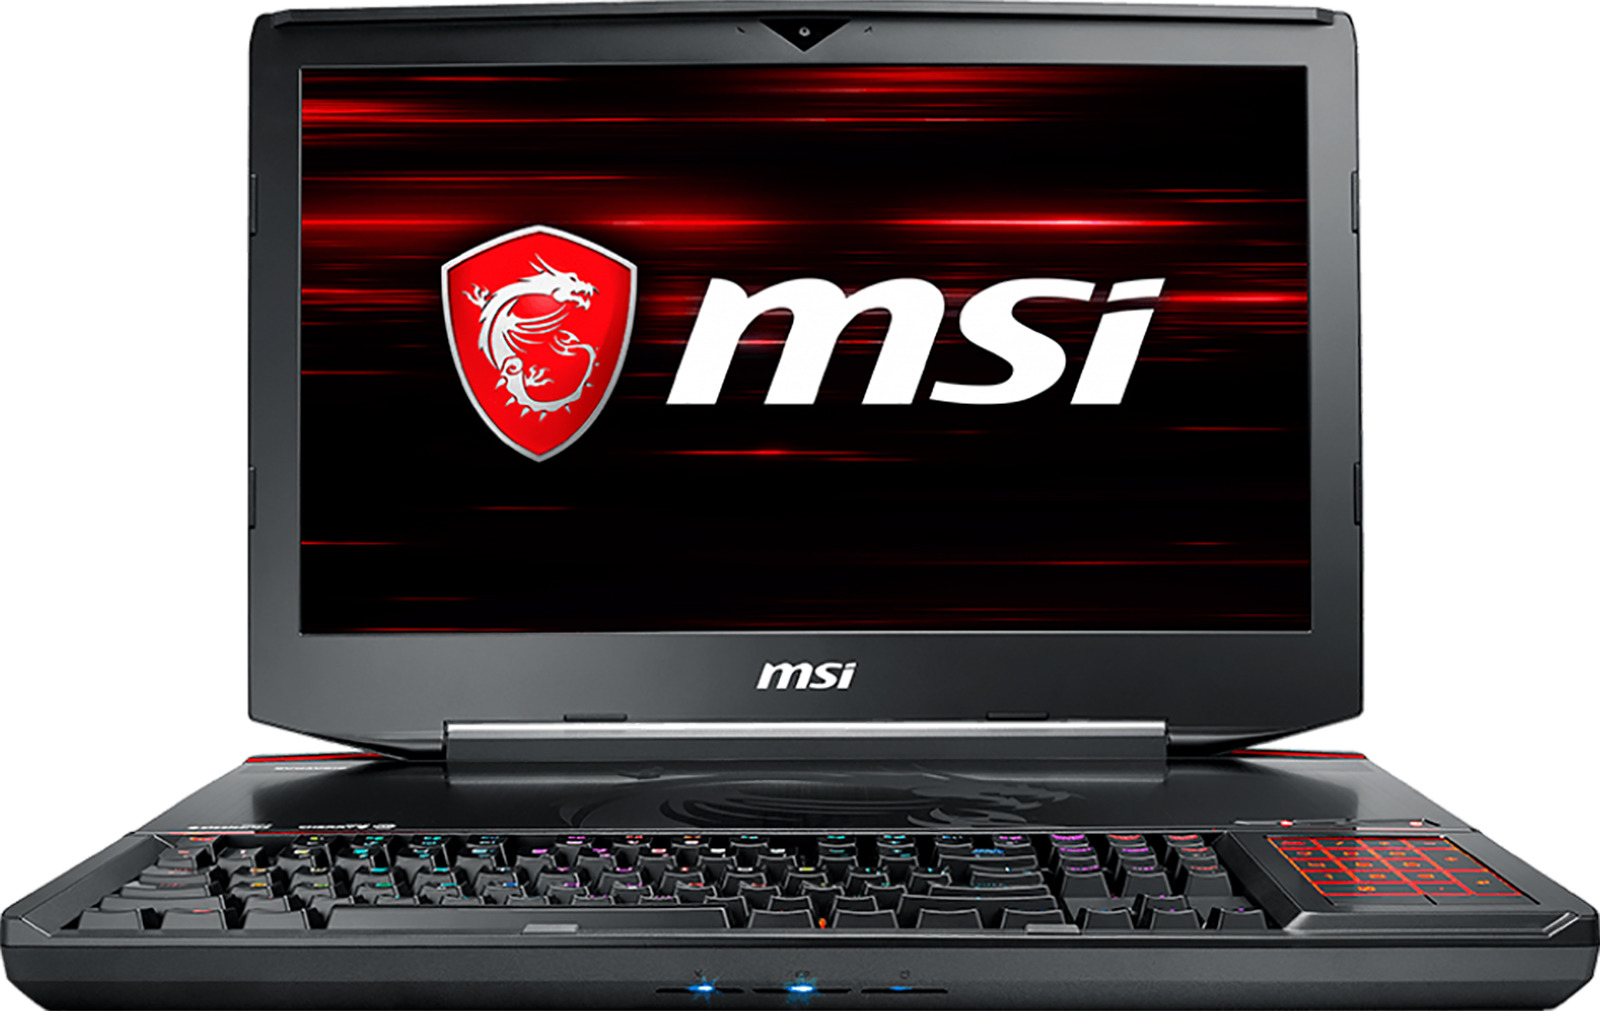 Игровой ноутбук MSI GT83 Titan 8RF 9S7-181612-006, черный ноутбук msi gt83 8rg 006ru titan intel core i7 8850h 2600 mhz 18 4 1920х1080 32768mb 512gb hdd blu ray nvidia geforce gtx 1070 х 2 wifi windows 10 home